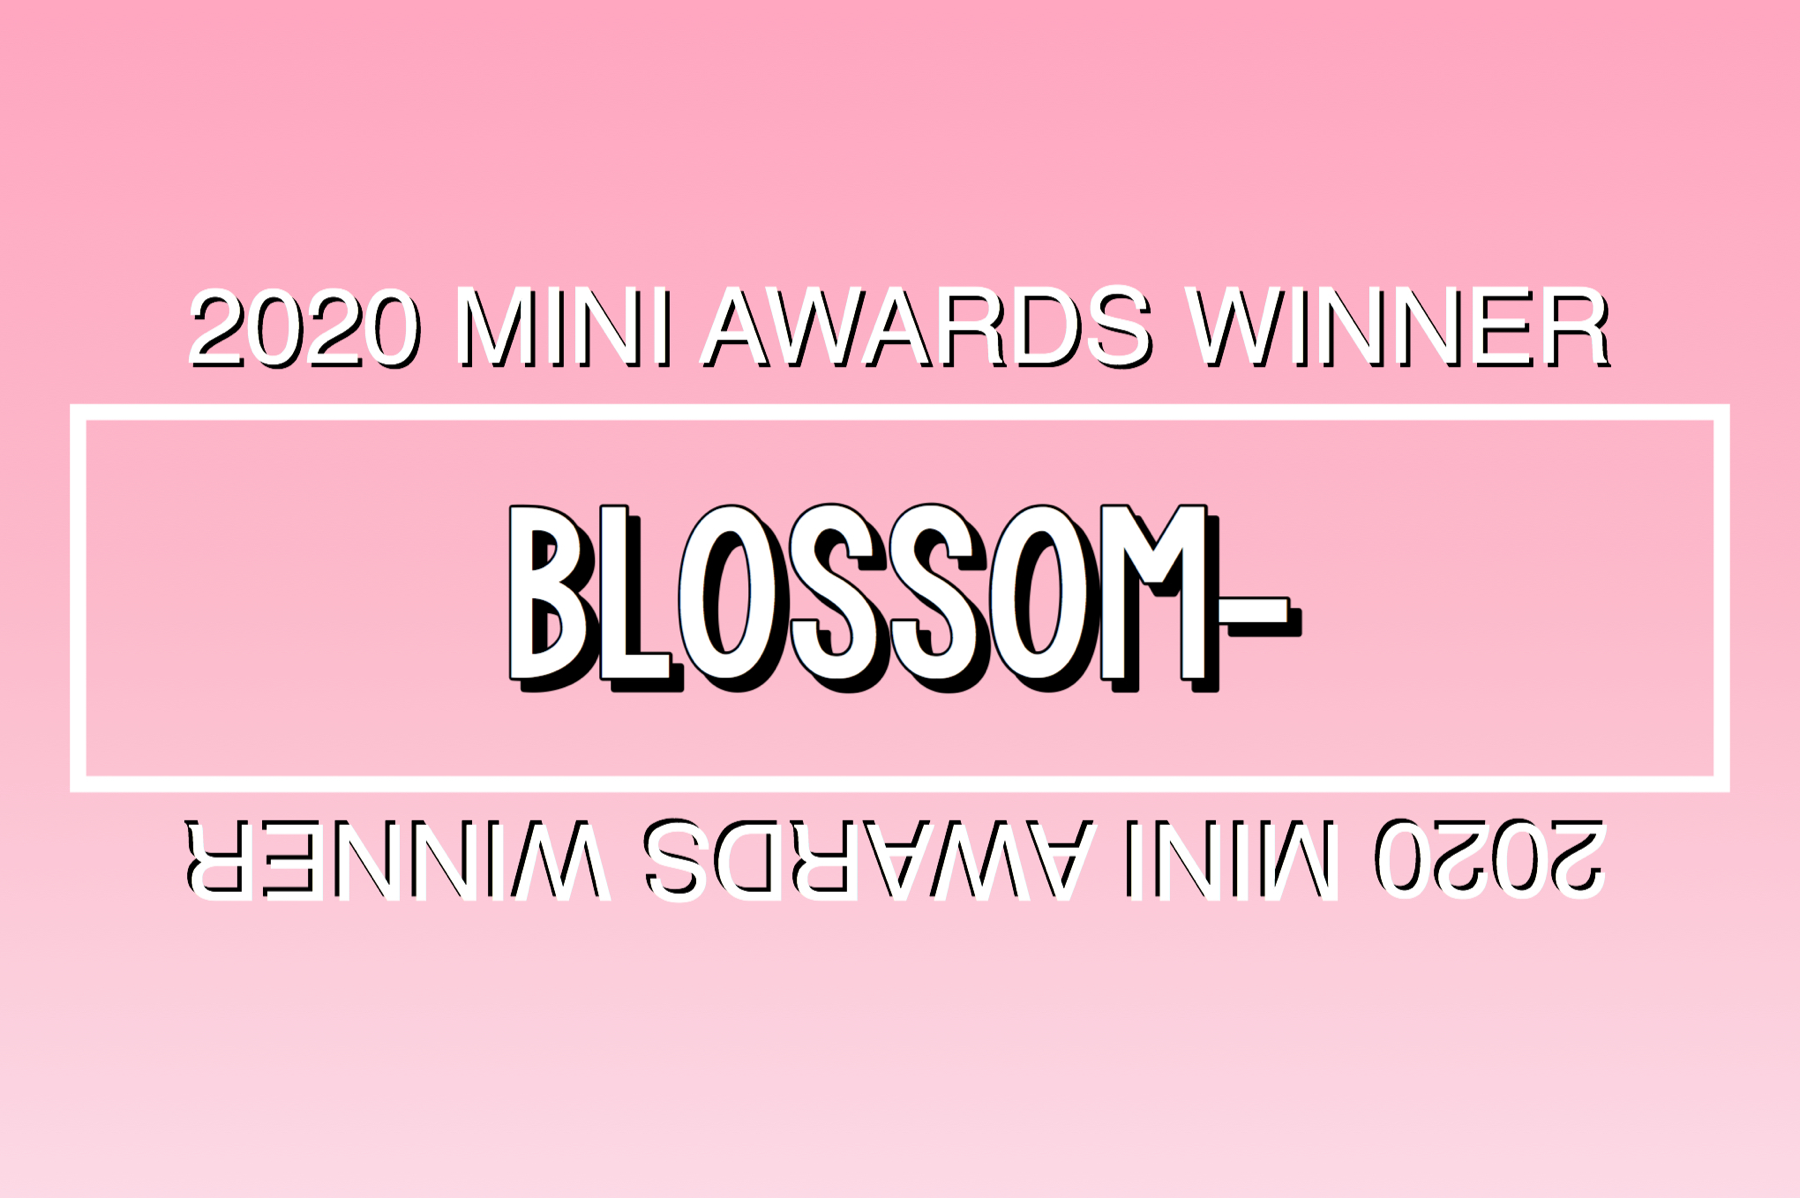 2020 Mini Awards Winner @blossom-!